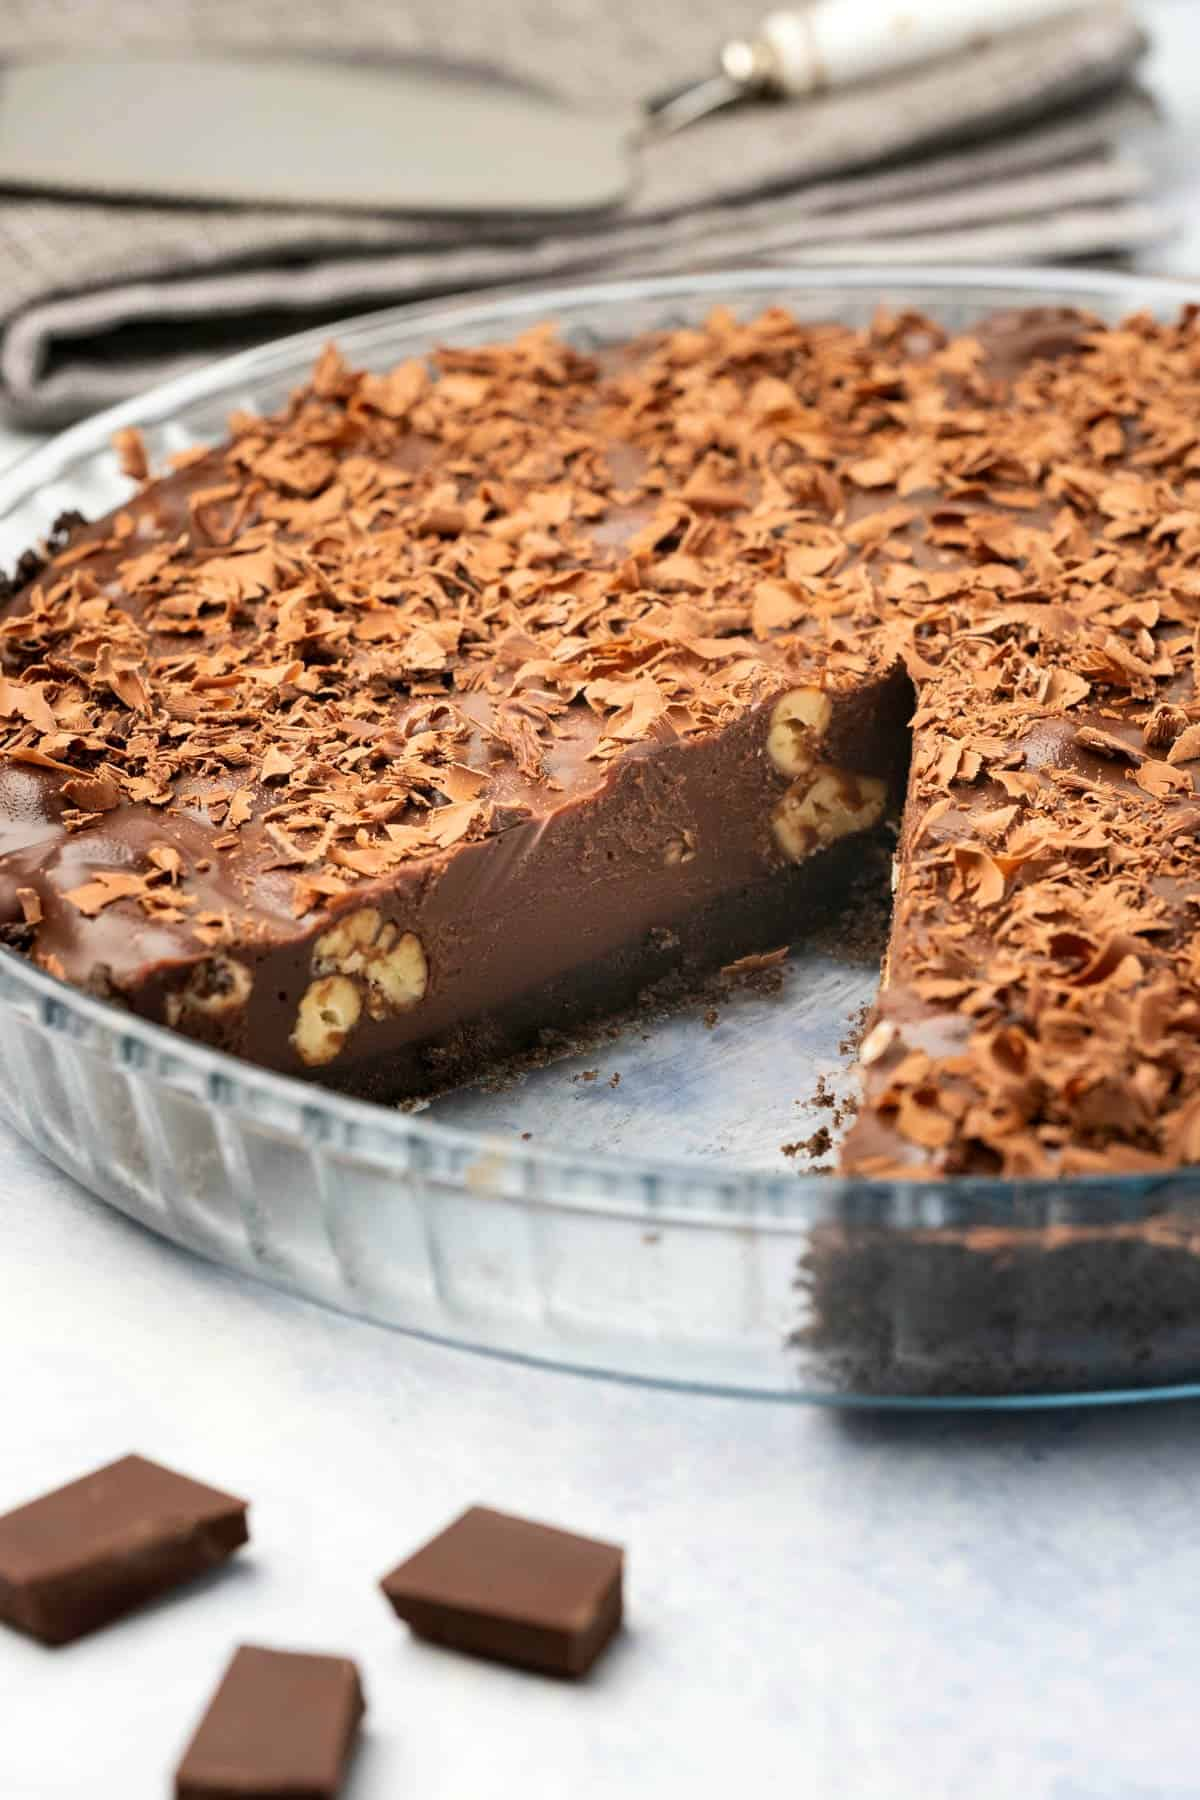 Chocolate Tart topped with chocolate shavings in a glass pie dish.